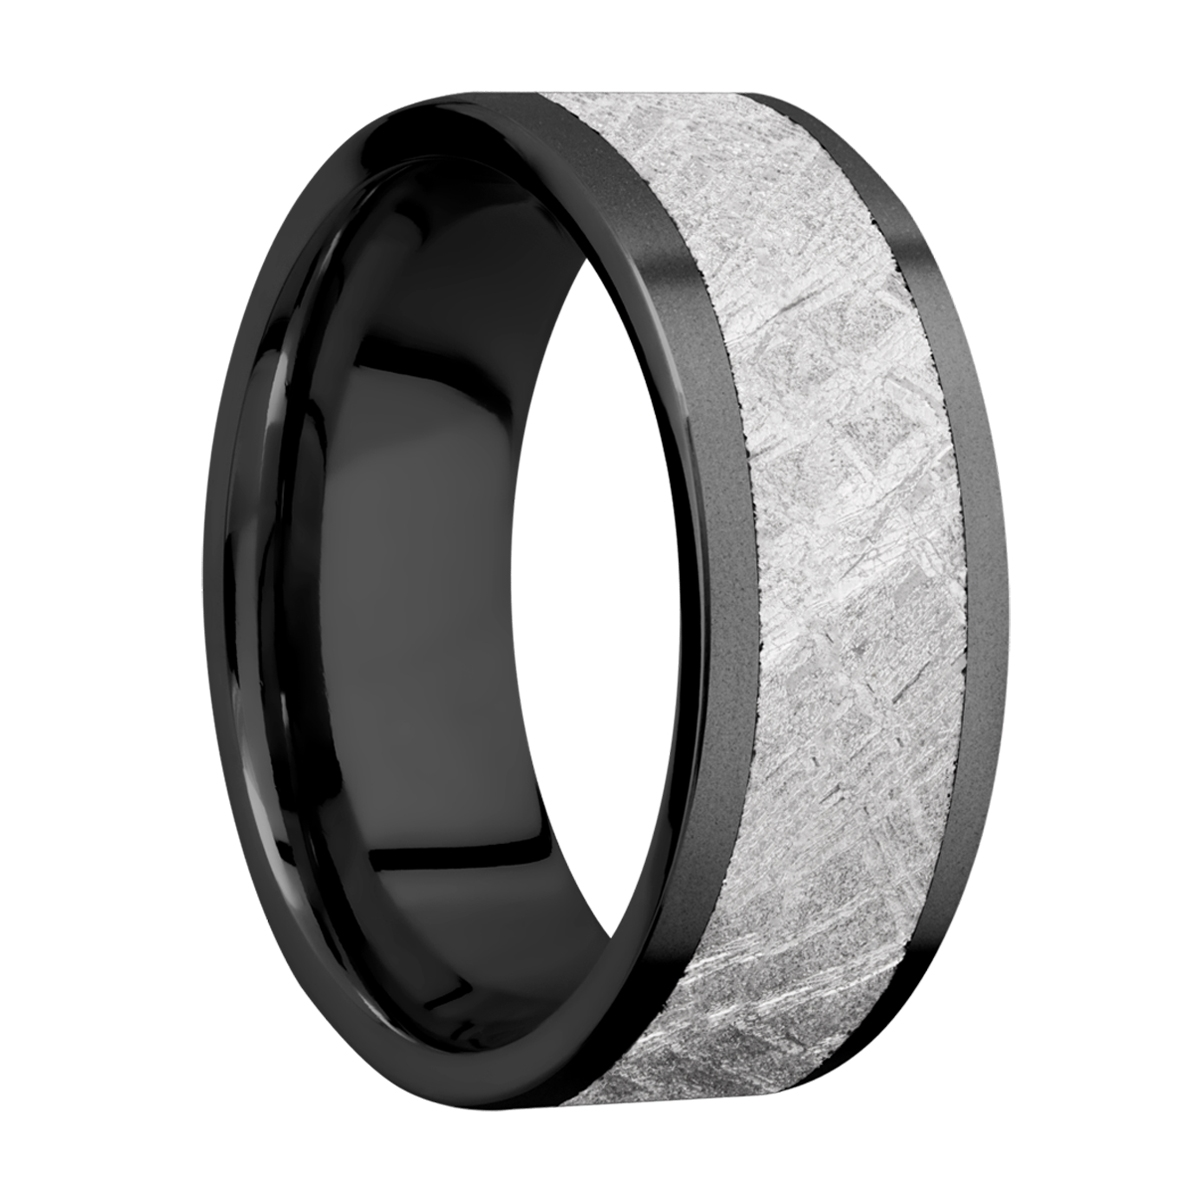 Lashbrook Z8F16/METEORITE Zirconium Wedding Ring or Band Alternative View 1